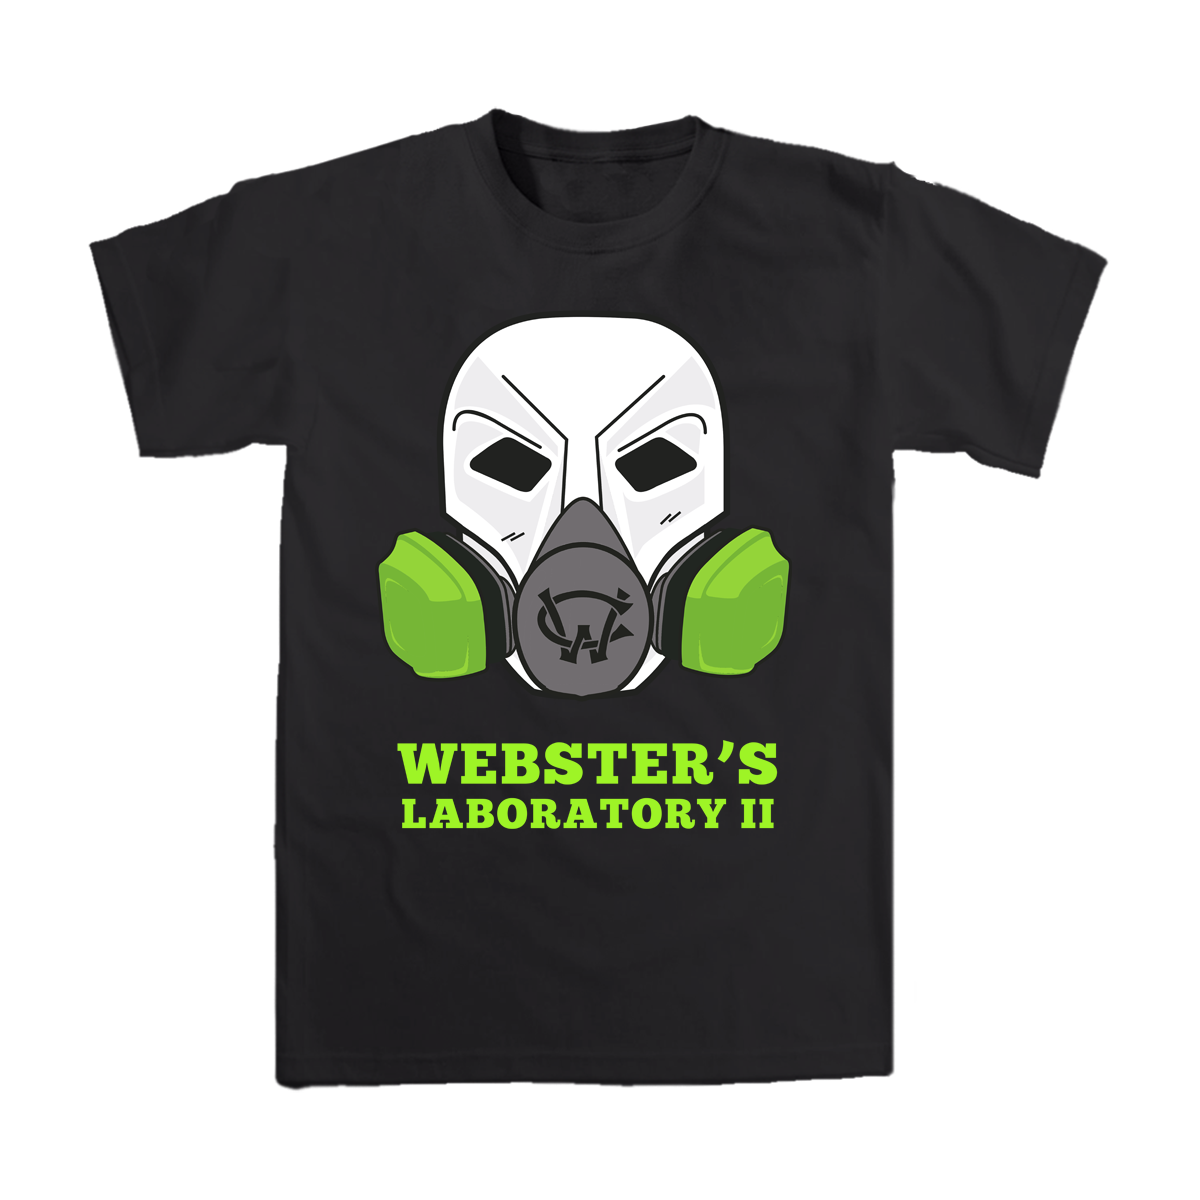 Webster's Lab II T-shirt